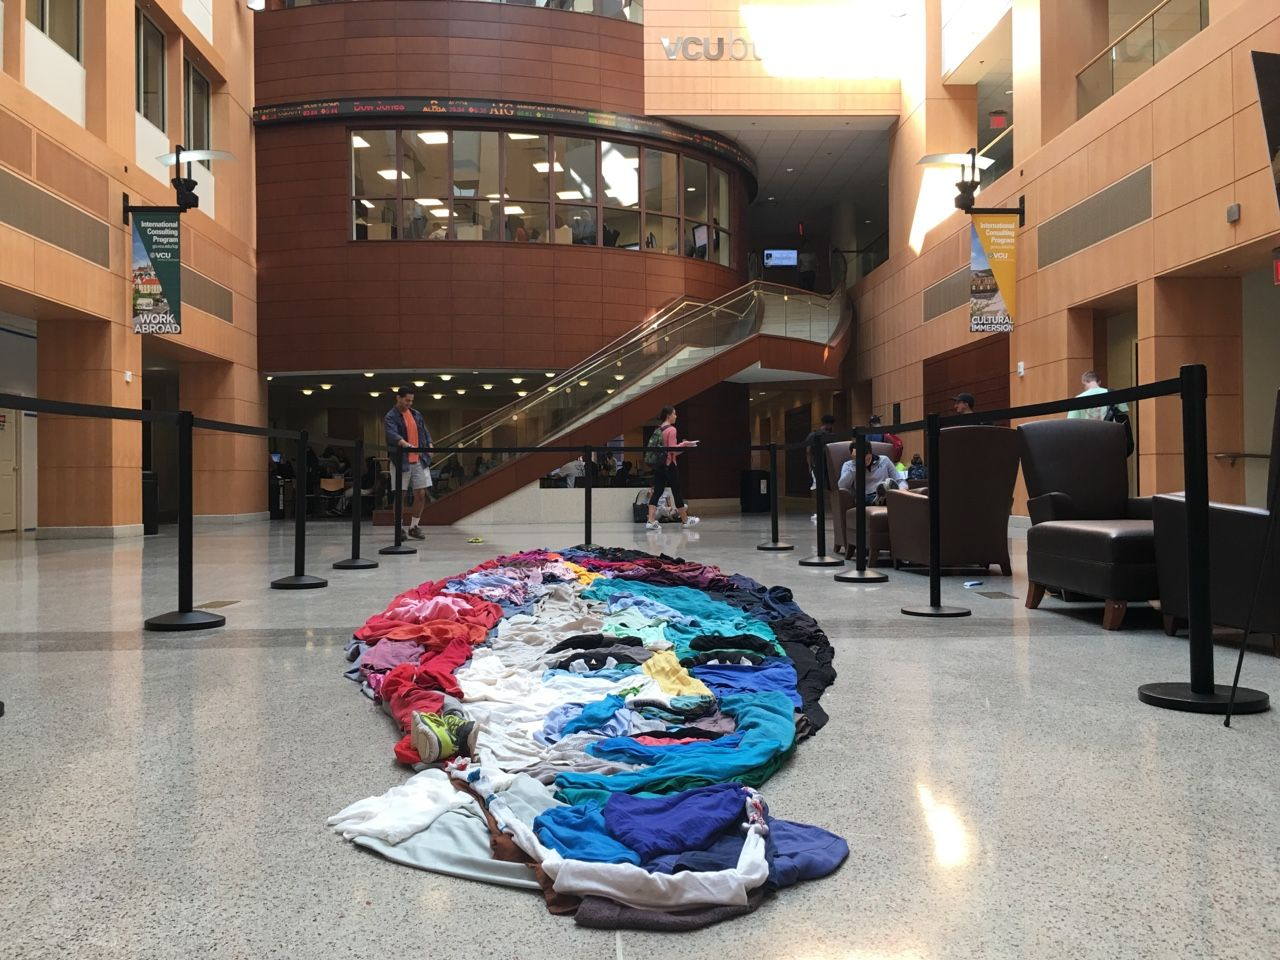 Art Installation Piece Made Of Donated Clothing In The VCU School Business Building